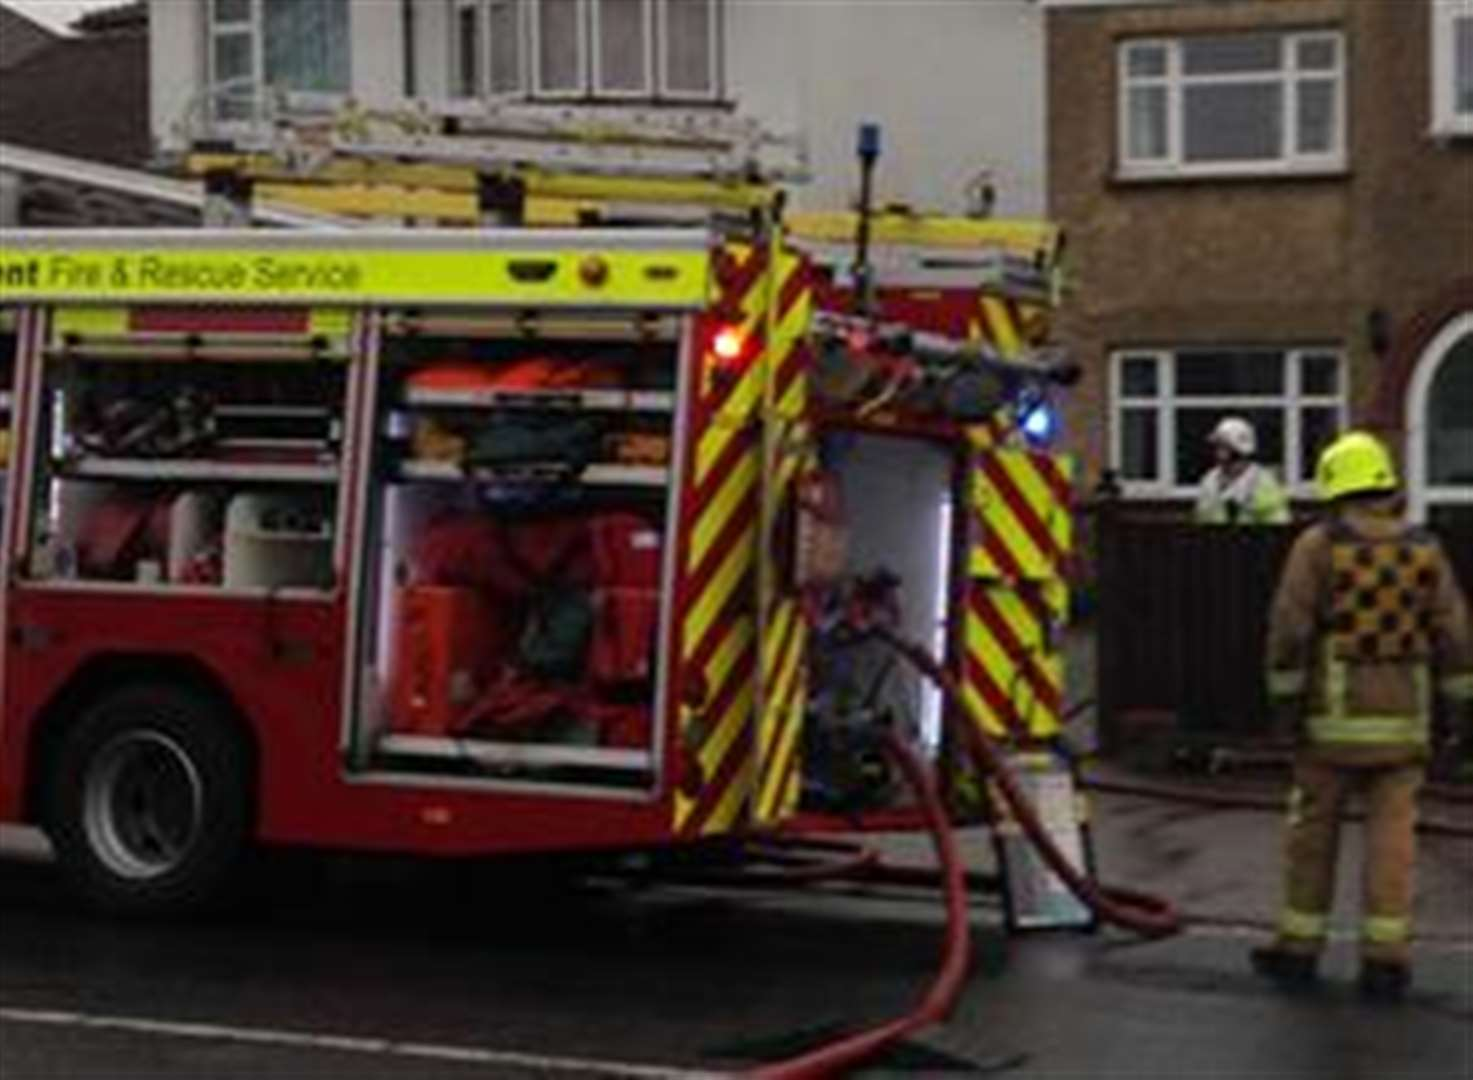 Folkestone News Latest Live From Express Fuse Box Fire Sparks